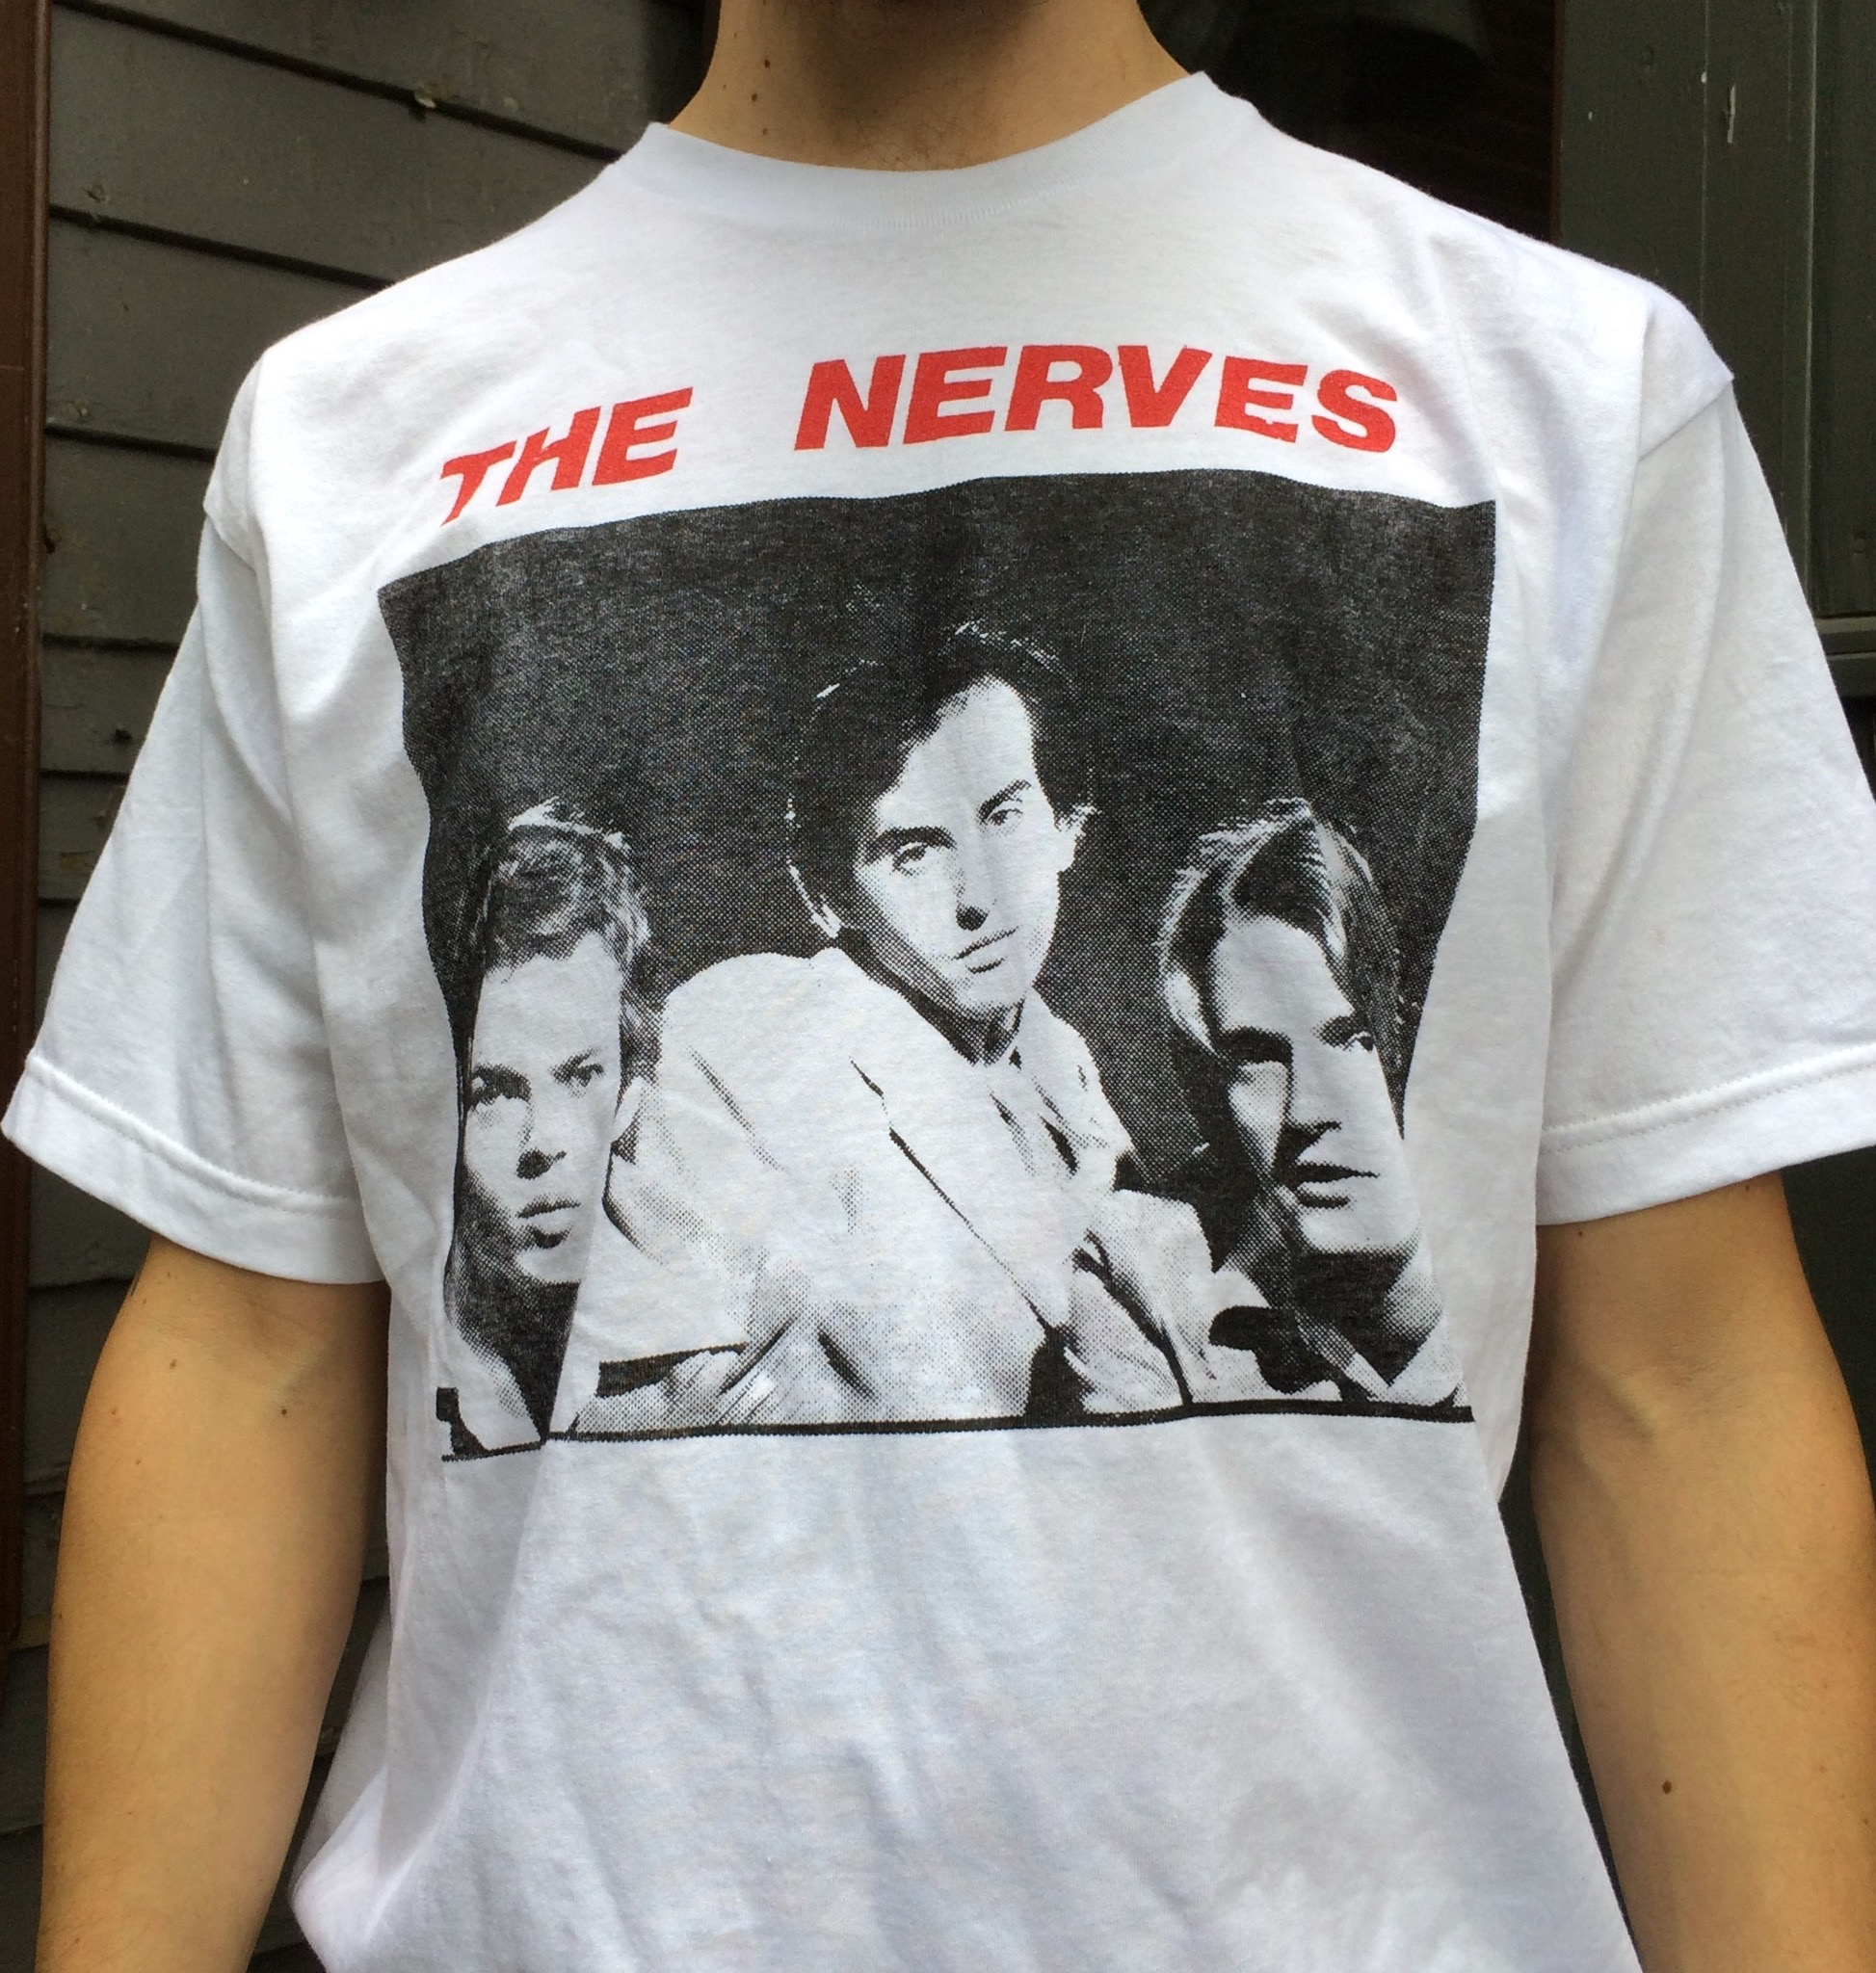 KIDxAGE DISTRO | The Nerves "|1947|2048|?|c865106e08edd01610cbc678c6b185ba|NSFW|0.32937419414520264